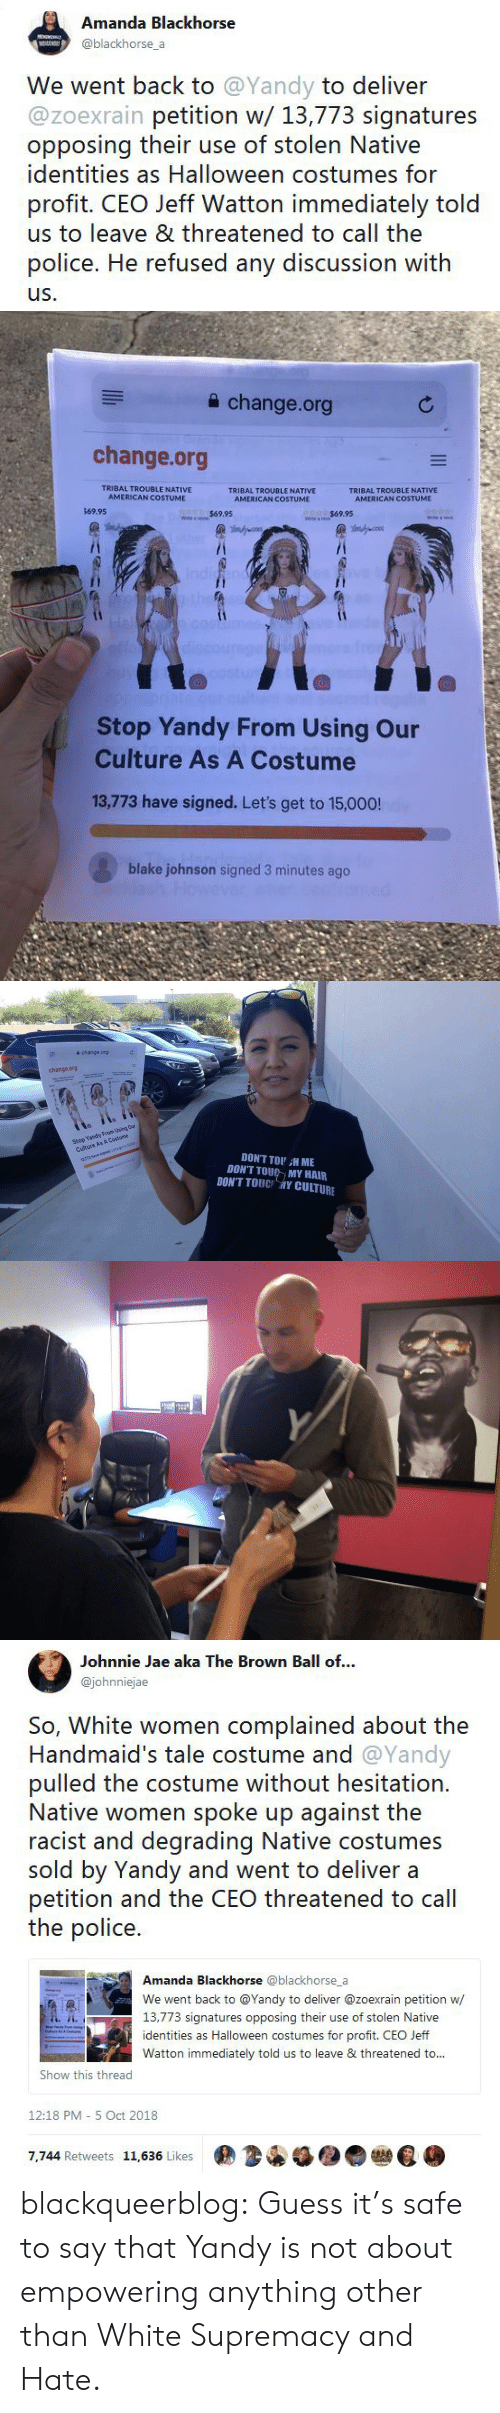 Identities: Amanda Blackhorse  @blackhorse a  We went back to @Yandy to deliver  @zoexrain petition w/ 13,773 signatures  opposing their use of stolen Native  identities as Halloween costumes for  profit. CEO Jeff Watton immediately told  us to leave & threatened to call the  police. He refused any discussion with  us.   a change.org  change.org  TRIBAL TROUBLE NATIVE  AMERICAN COSTUME  TRIBAL TROUBLE NATIVE  AMERICAN COSTUME  TRIBAL TROUBLE NATIVE  69.95  $69.95  Stop Yandy From Using Our  Culture As A Costume  13,773 have signed. Let's get to 15,000!  blake johnson signed 3 minutes ago   슐 change.org  change.org  Stop Yandy From Using Our  Culture As A Costume  13773 have signed. Lets get to 150  DON'T TOU H ME  DON'T TOU MY HAIR  DONT TOUC 개Y CULTURE   Johnnie Jae aka The Brown Ball of...  @johnniejae  So, White women complained about the  Handmaid's tale costume and @Yandy  pulled the costume without hesitation.  Native women spoke up against the  racist and degrading Native costumes  sold by Yandy and went to deliver a  petition and the CEO threatened to cal  the police.  Amanda Blackhorse @blackhorse_a  We went back to @Yandy to deliver @zoexrain petition w  13,773 signatures opposing their use of stolen Native  identities as Halloween costumes for profit. CEO Jeff  Watton immediately told us to leave & threatened to..  Show this thread  12:18 PM- 5 Oct 2018  7,744 Retweets 11,636 Likes  佣34锰●● blackqueerblog:  Guess it's safe to say that Yandy is not about empowering anything other than White Supremacy and Hate.